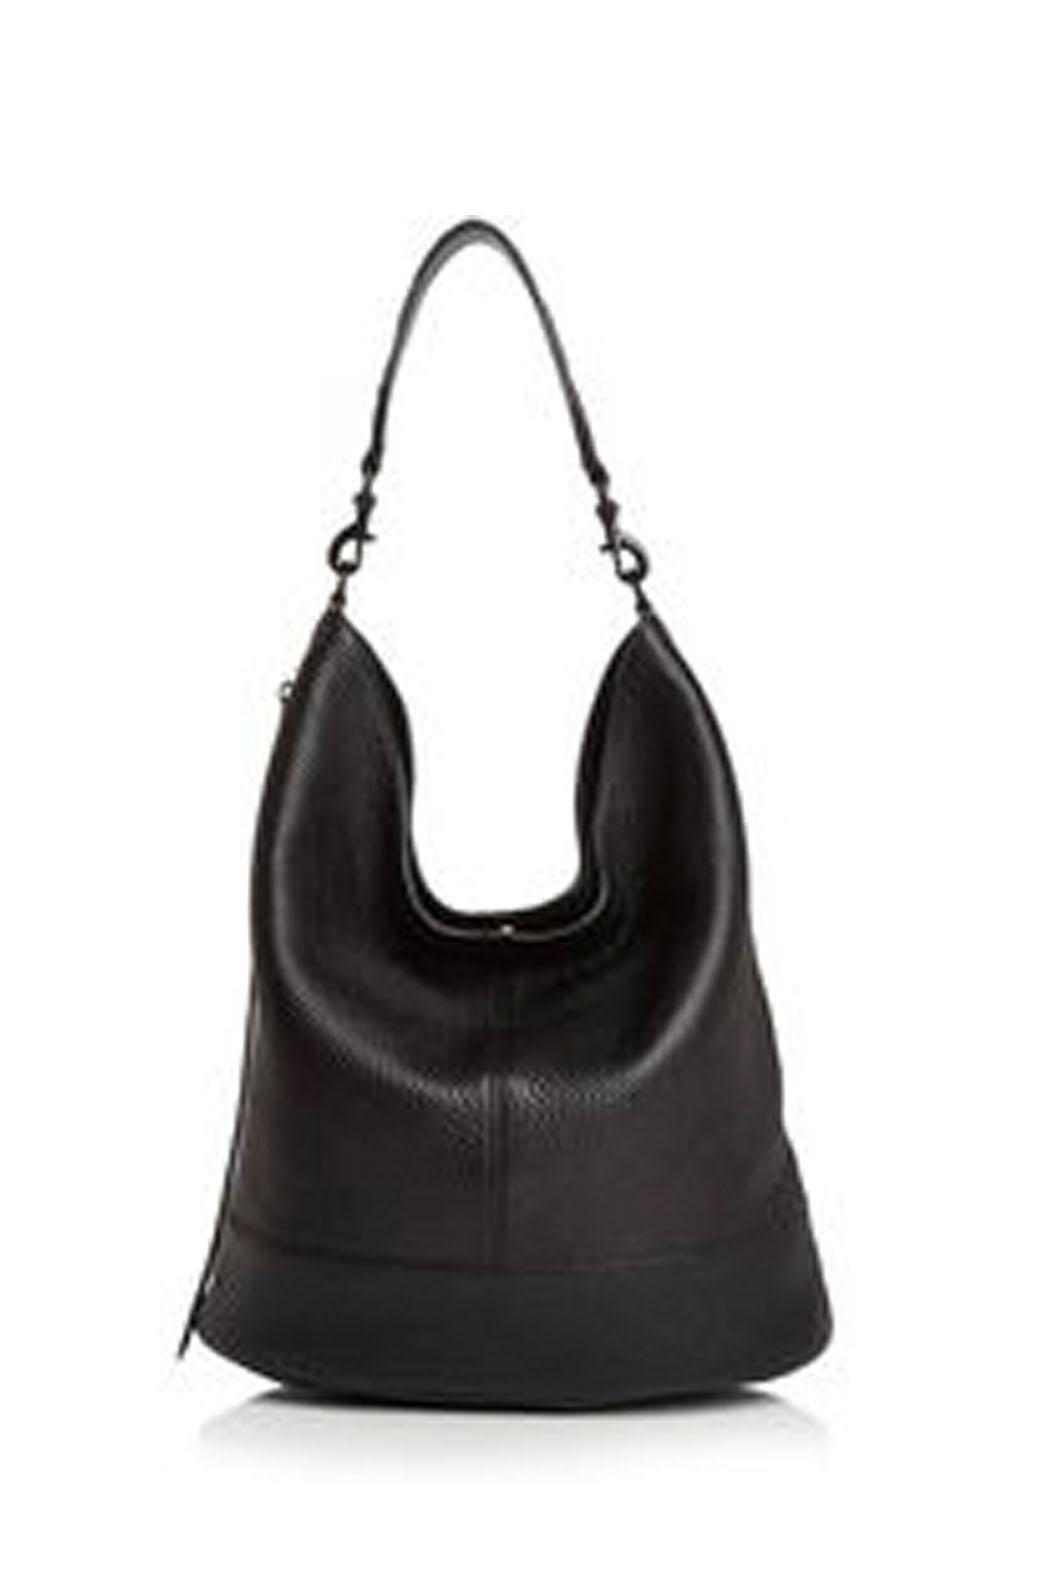 1f472c8bc11 Rebecca Minkoff Bucket Hobo Bag from New York by Let s Bag It ...